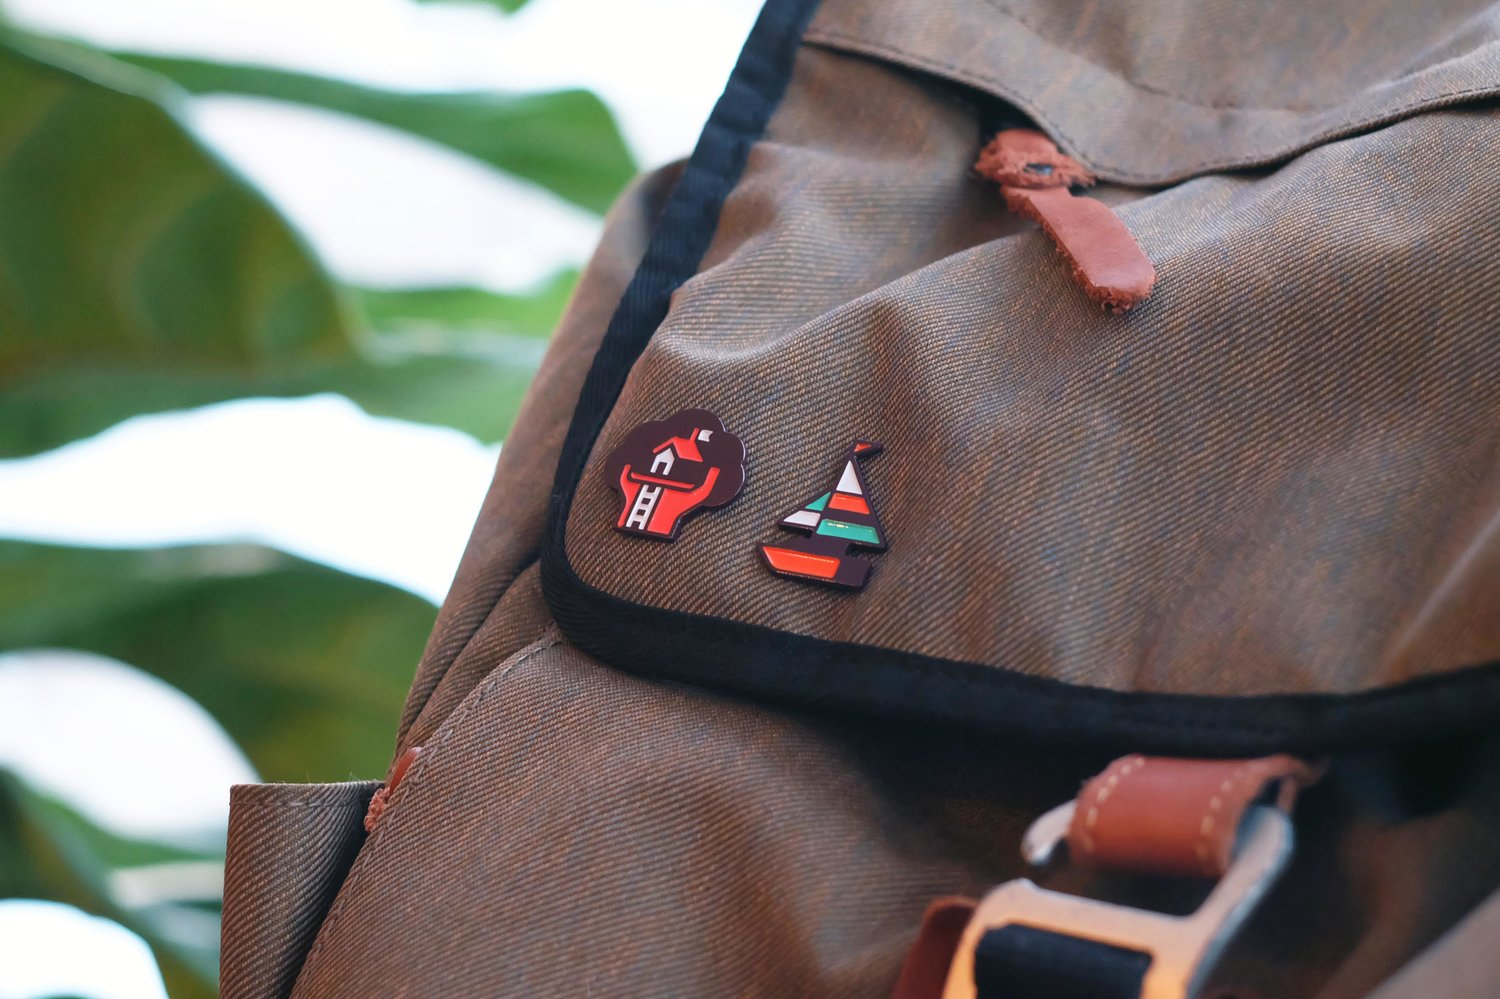 Treehouse and sailboat enamel pin design photograph on backpack by Matt Anderson / Canopy Design & Illustration.